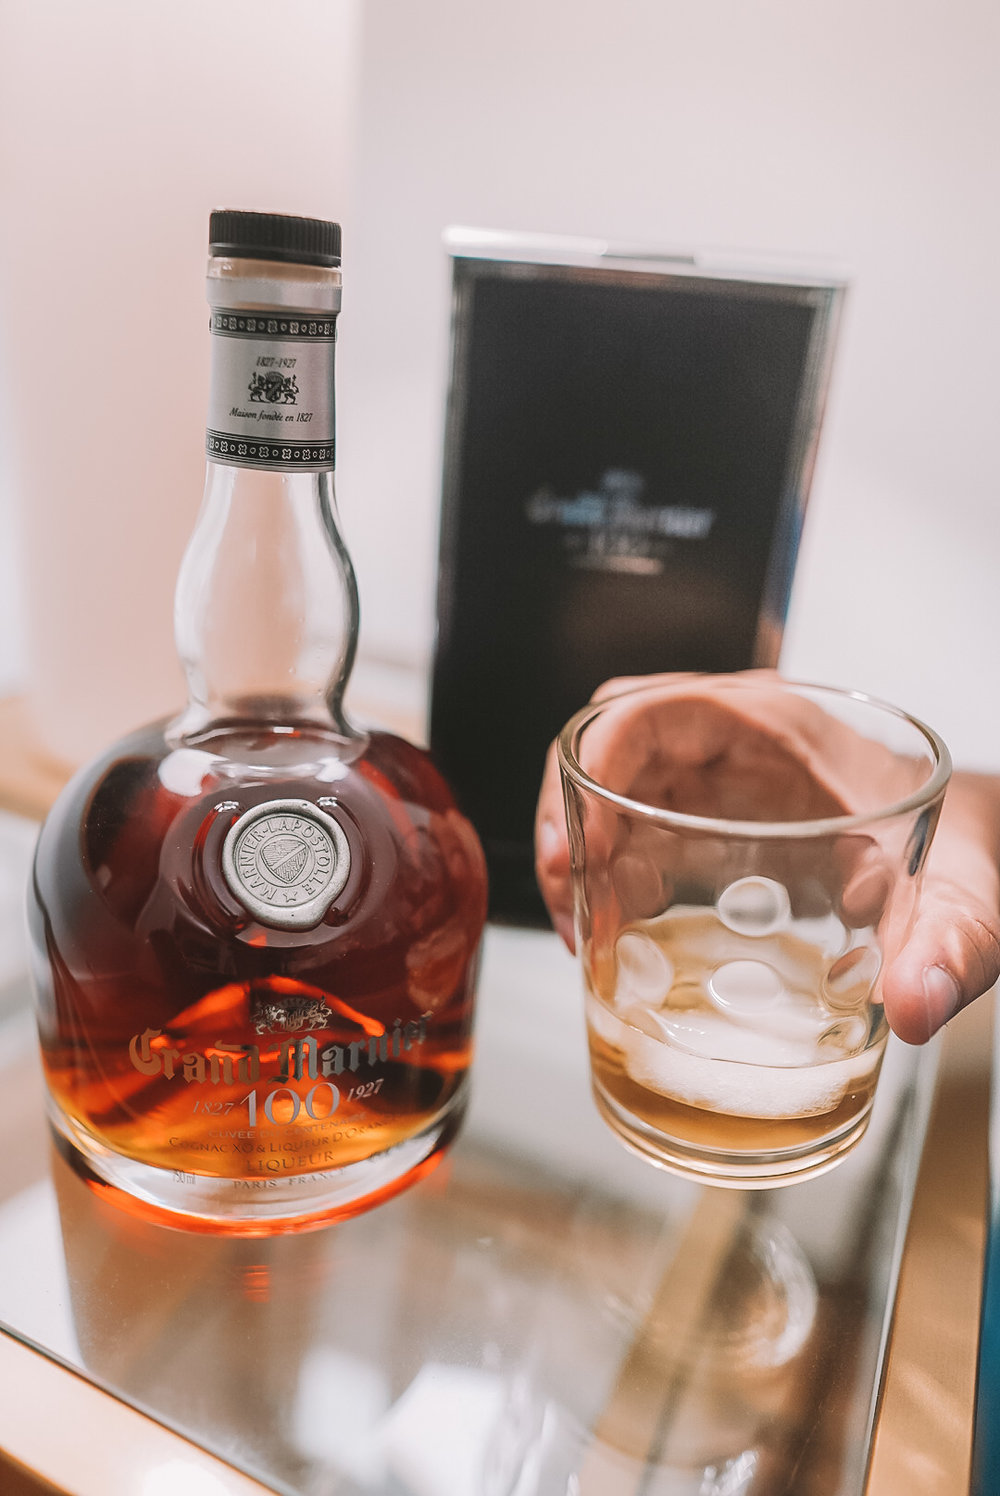 Grand Mariner 100 years - I recently had the opportunity to taste this fine wine for the first time, while I was in Florida. This is actually a special edition wine that celebrates its company's 100th anniversary. It is a treat to cherish, I can assure you that.